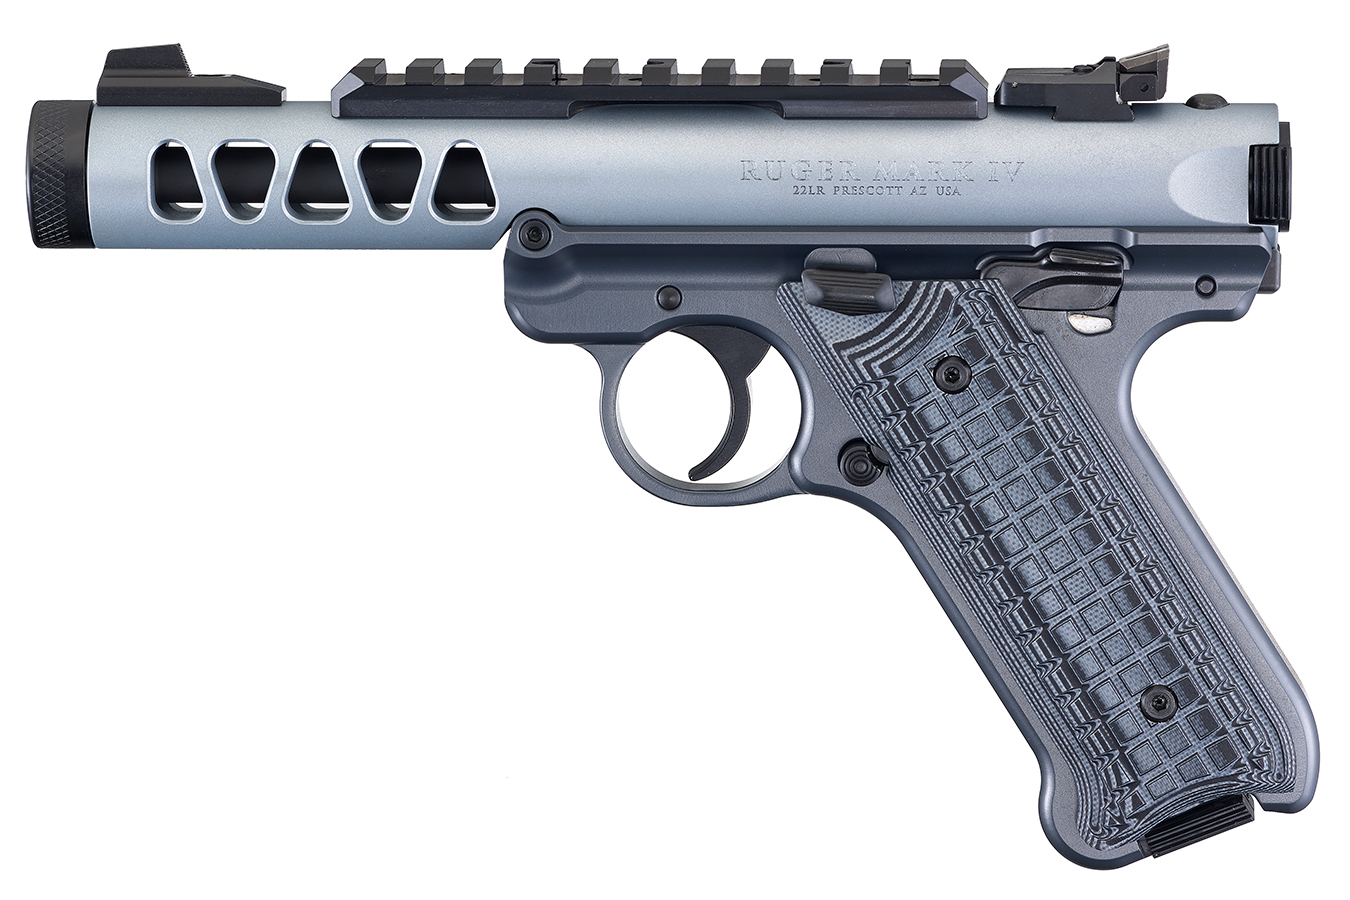 No. 15 Best Selling: RUGER MARK IV LITE 22LR DIAMOND GRAY ANODIZED